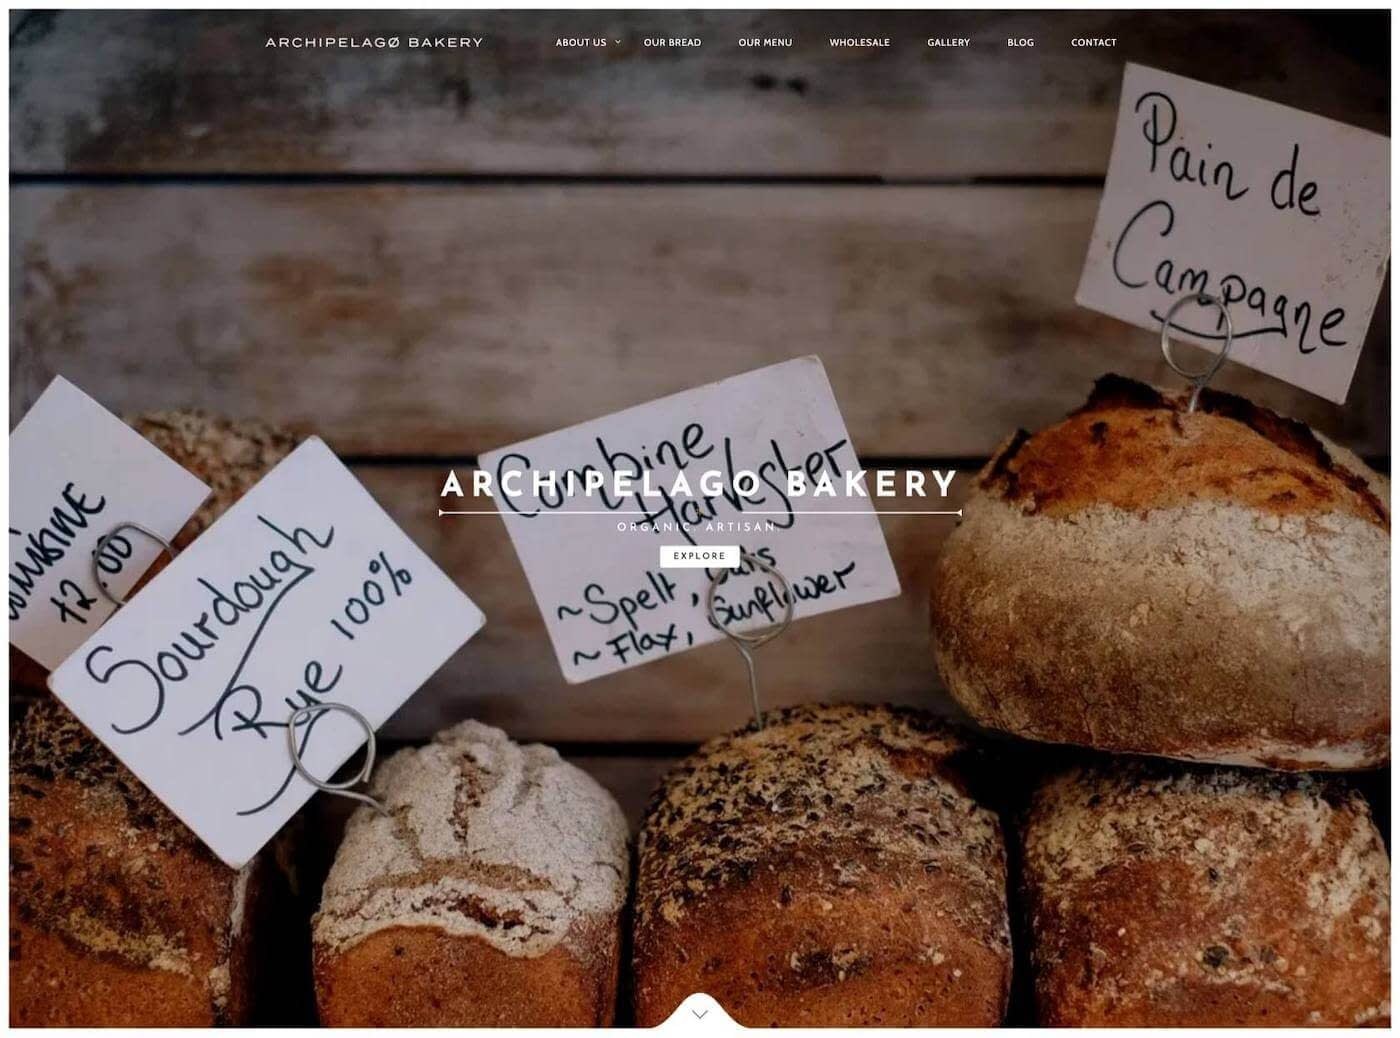 Web design for Archipelago Bakery, Edinburgh